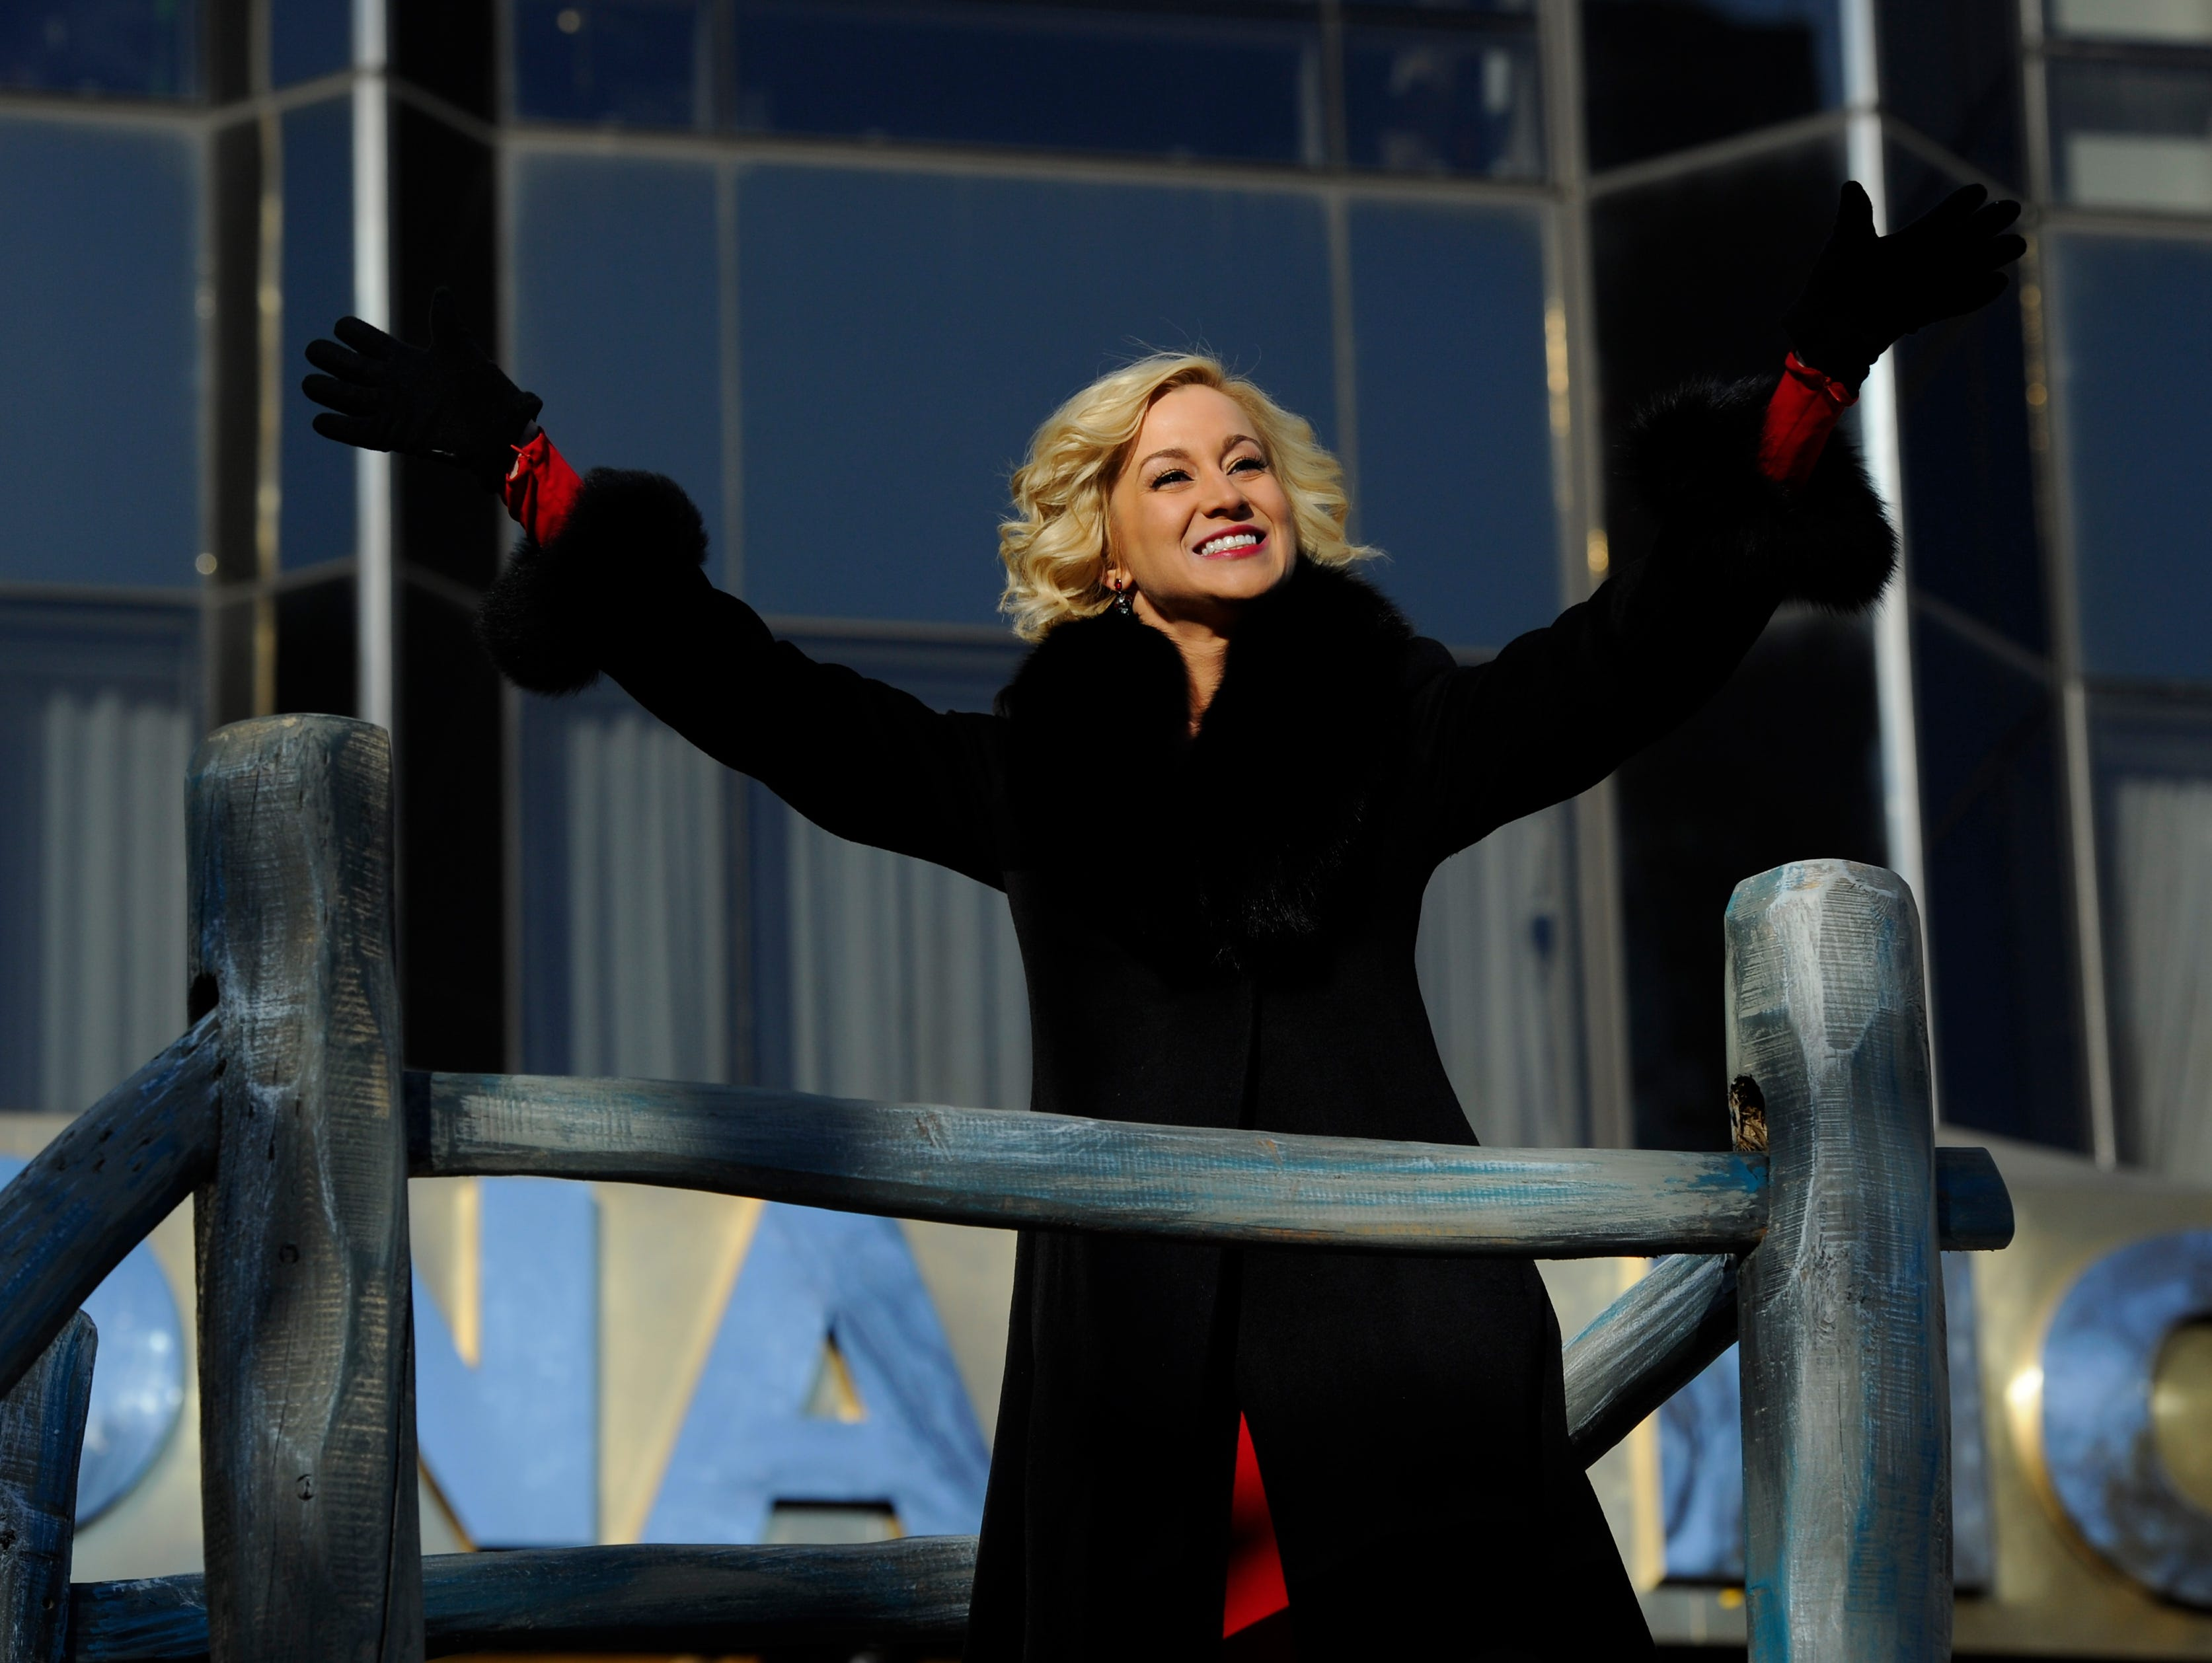 11/28/13 10:34:01 AM -- New York, NY, U.S.A  -- 87th Annual Macy's Thanksgiving Day Parade -- Kellie Pickler on a float Photo by Robert Deutsch, USA TODAY Staff